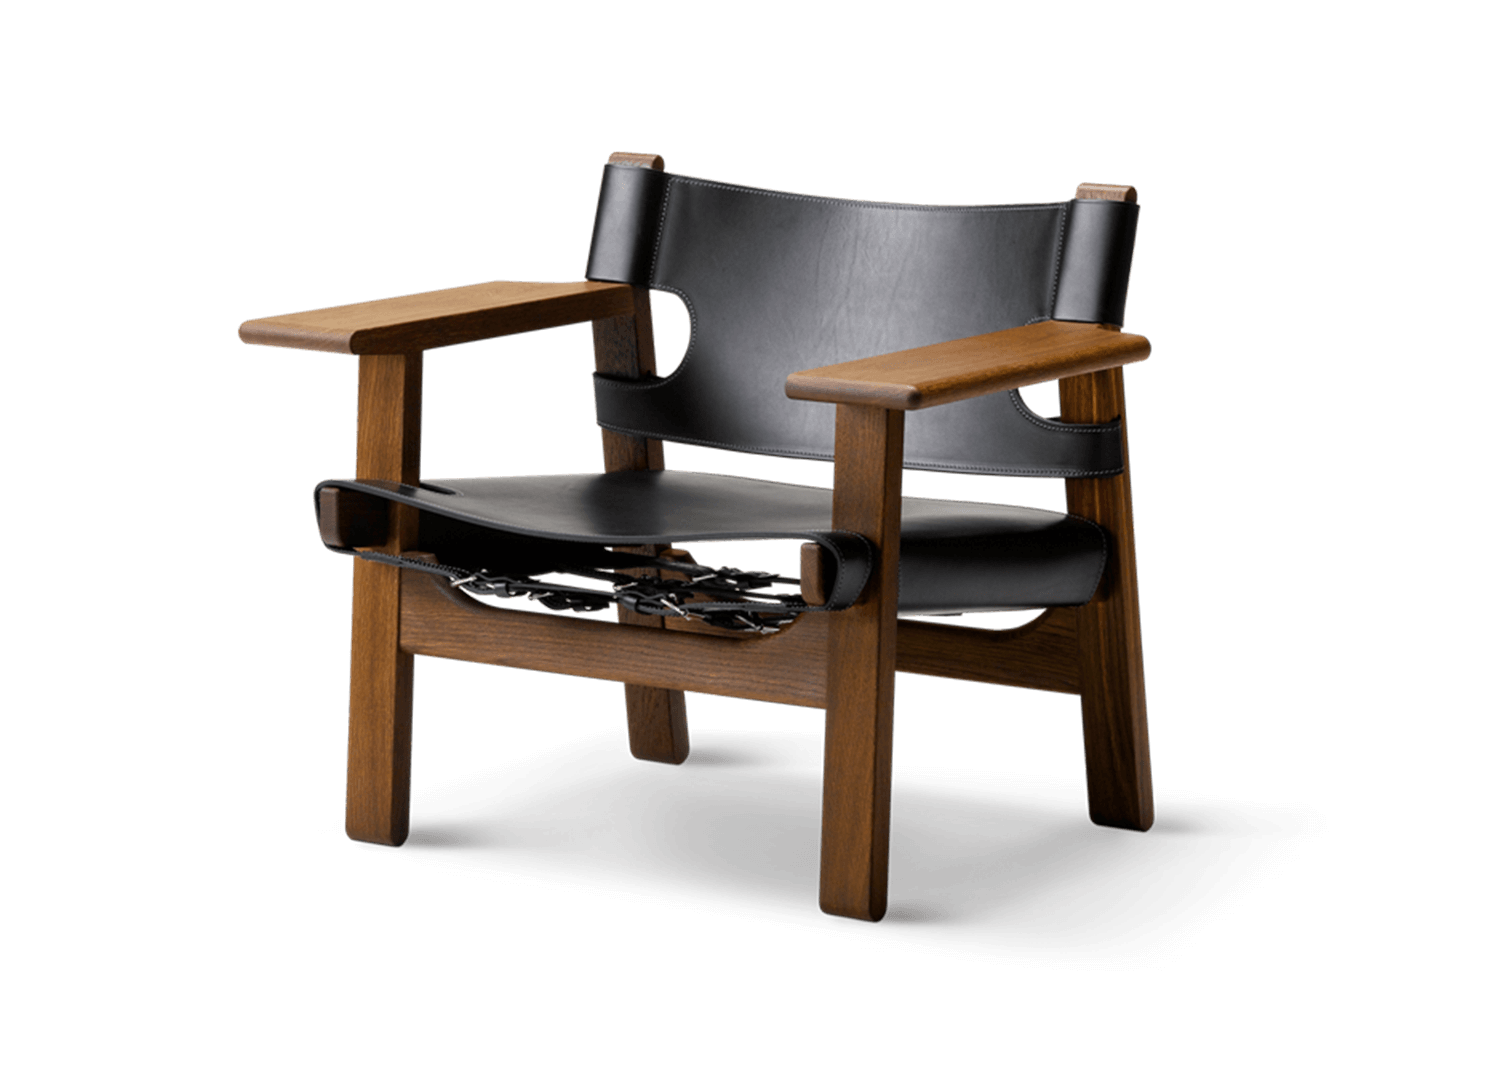 est living the spanish chair fredericia blackleather smokedoak 1218x675px 1218x675 copy